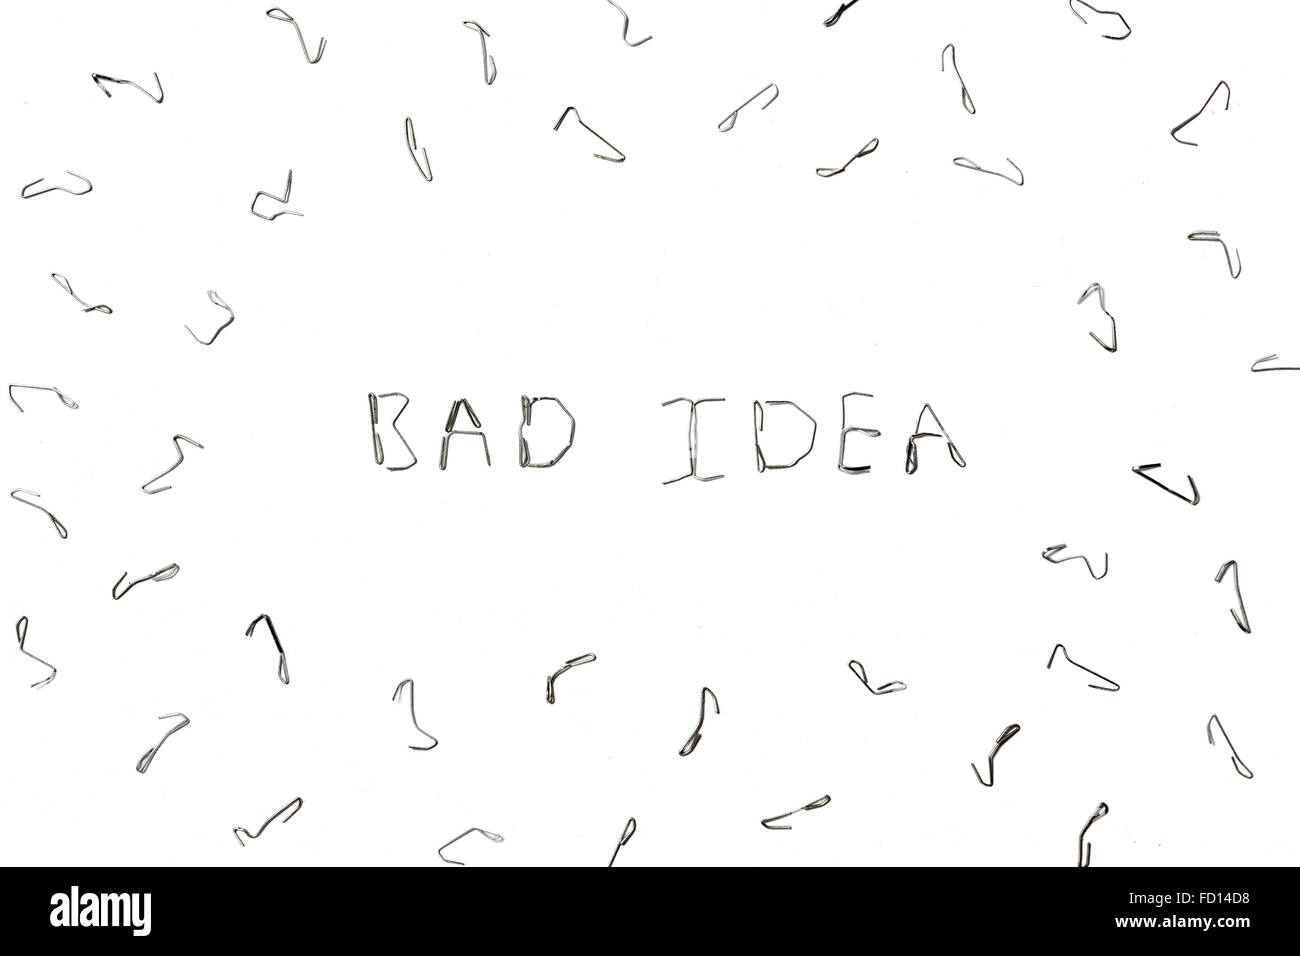 The inscription Bad idea from the damaged staples - Stock Image